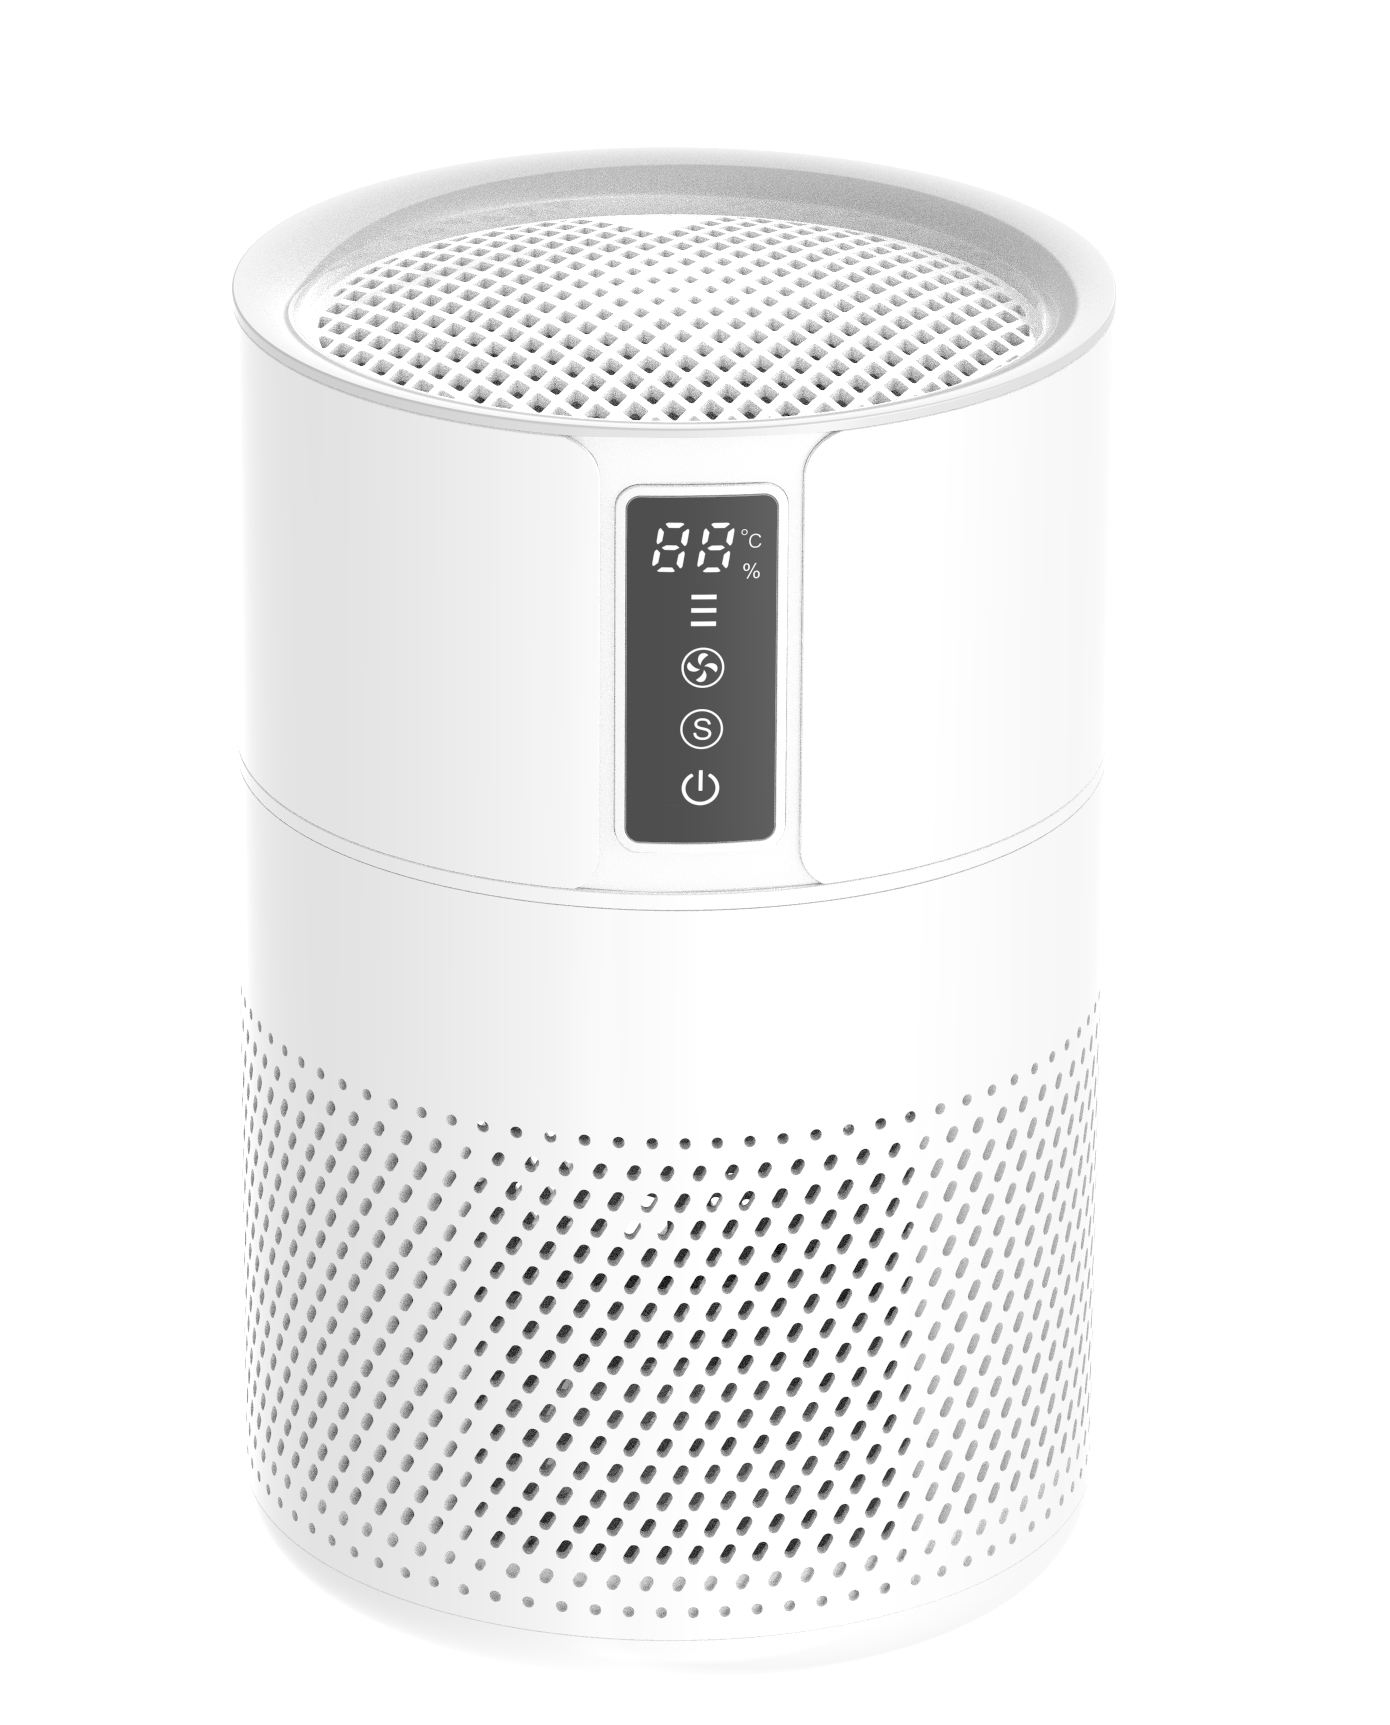 H13 HEPA filter air purifier with DC motor and air quality sensor